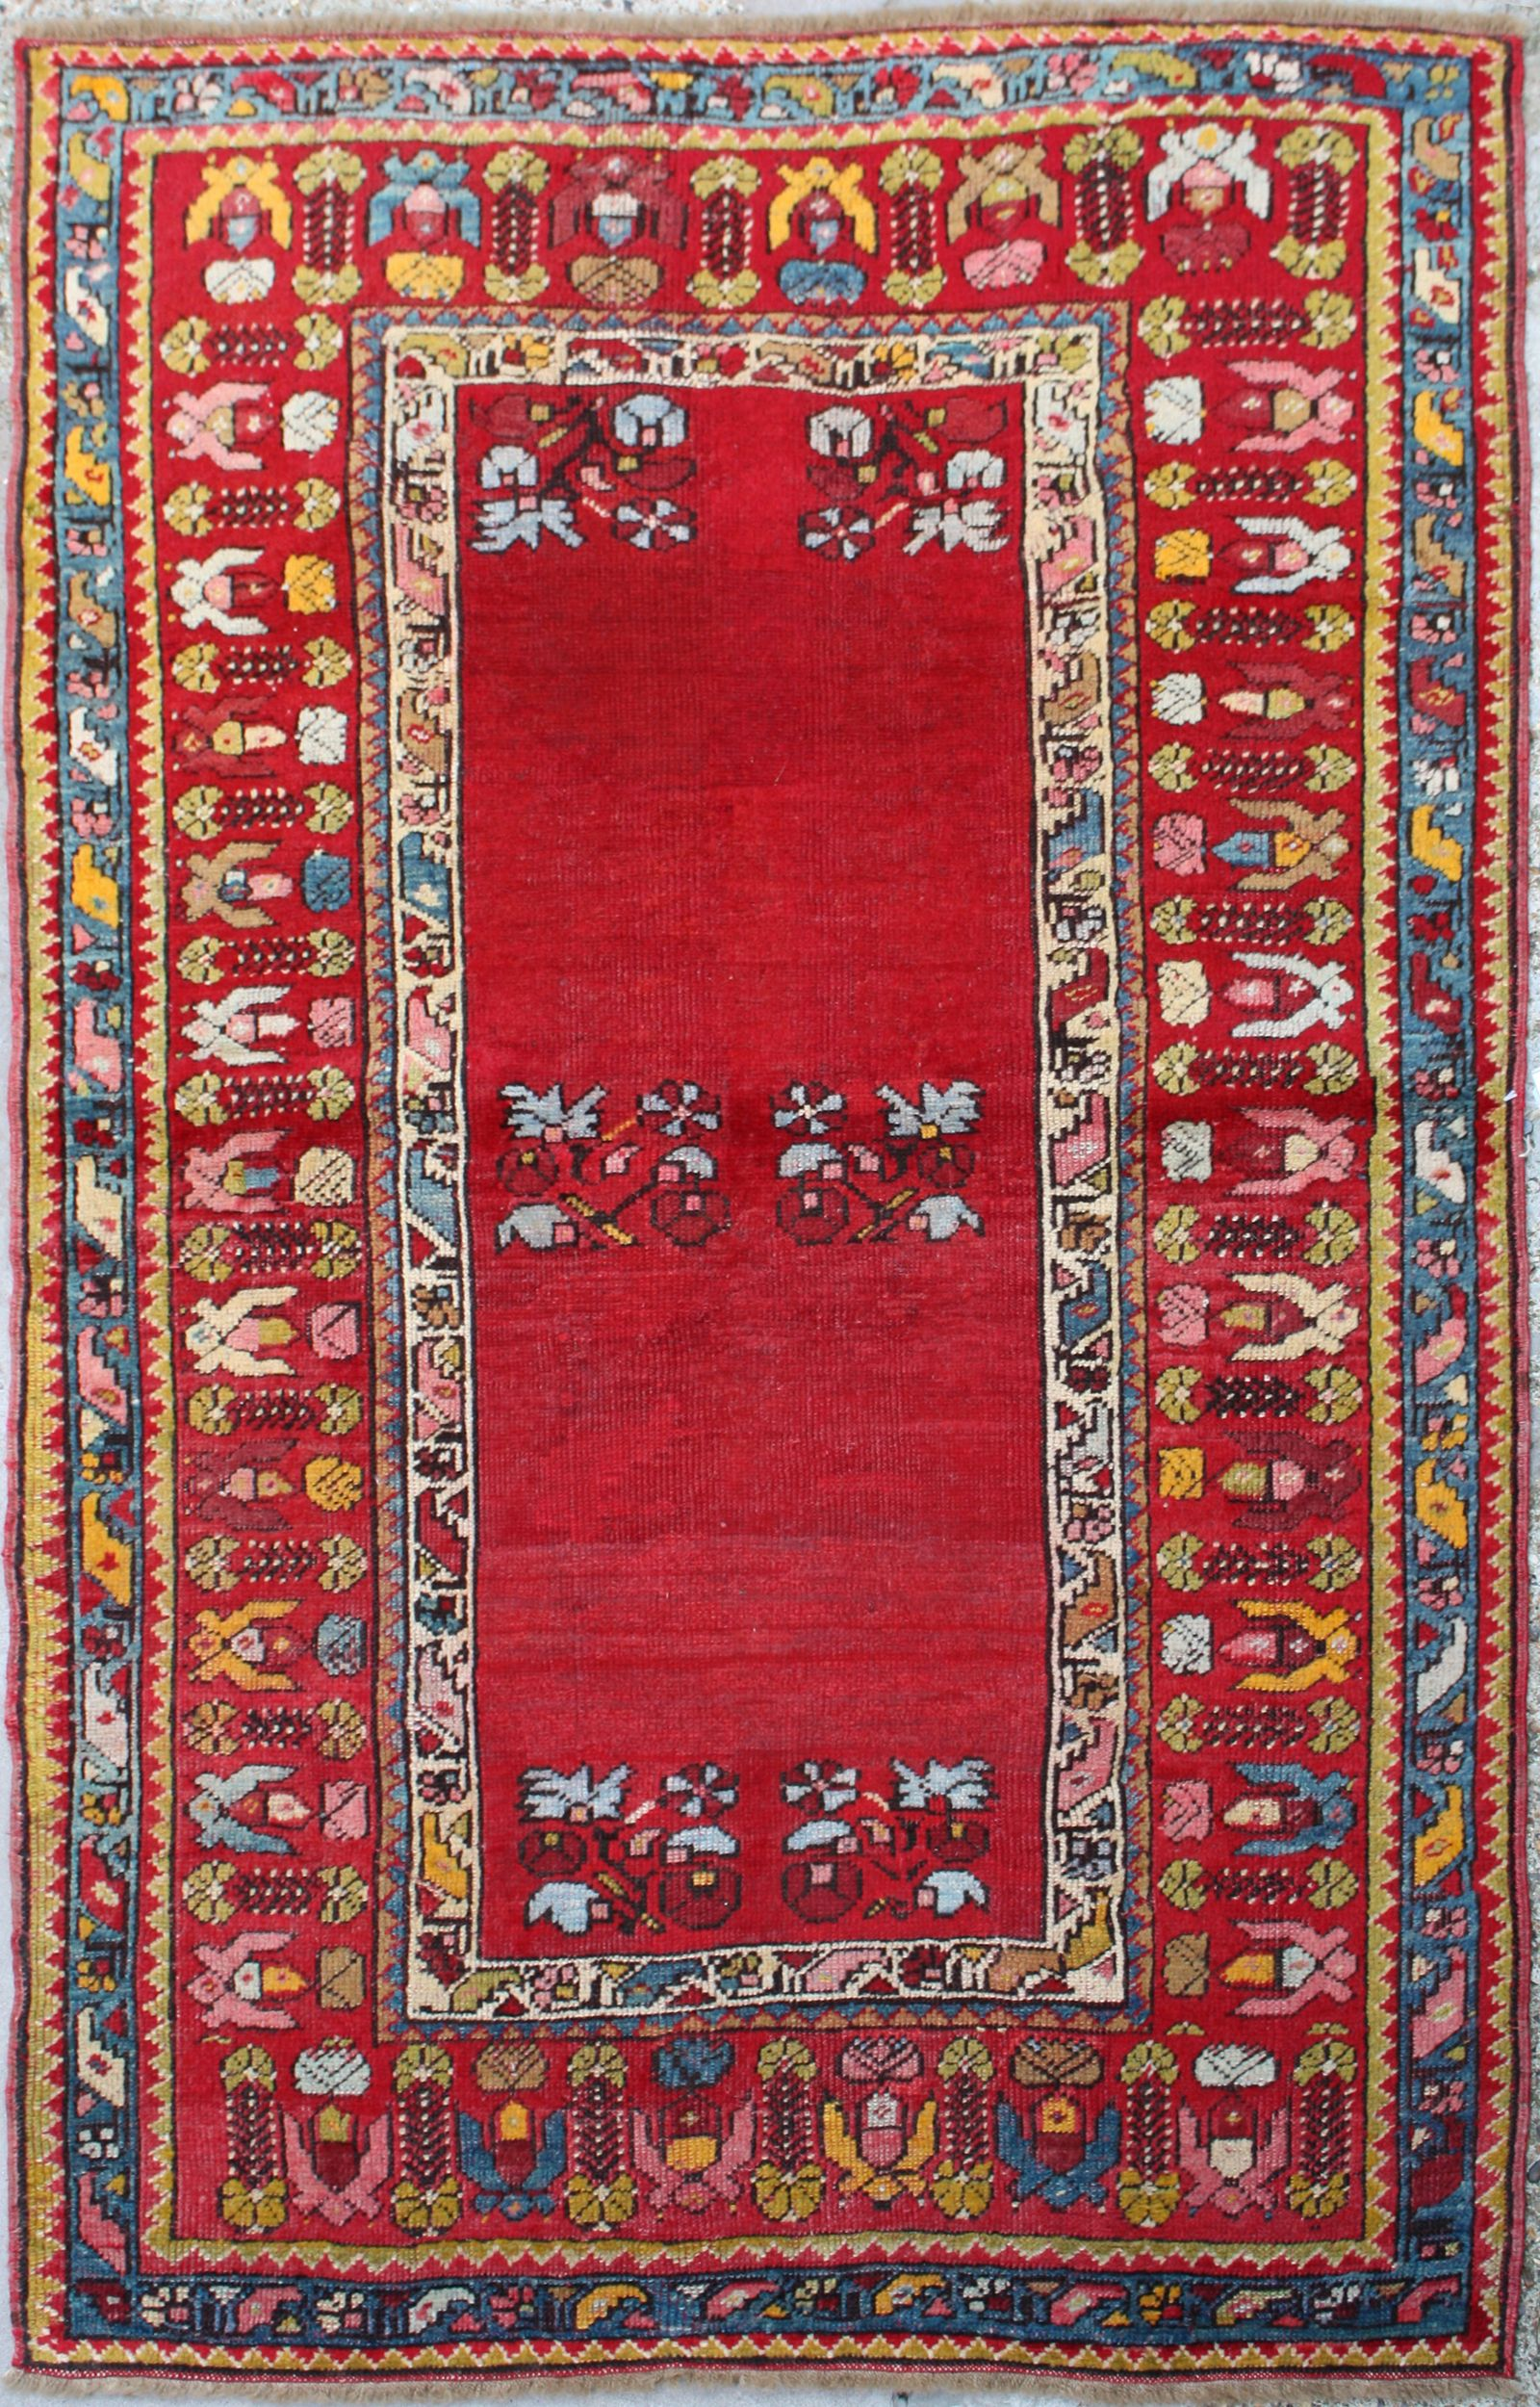 Mujur Rug Turkish Rugs Large Math Persian Carpets Afghan